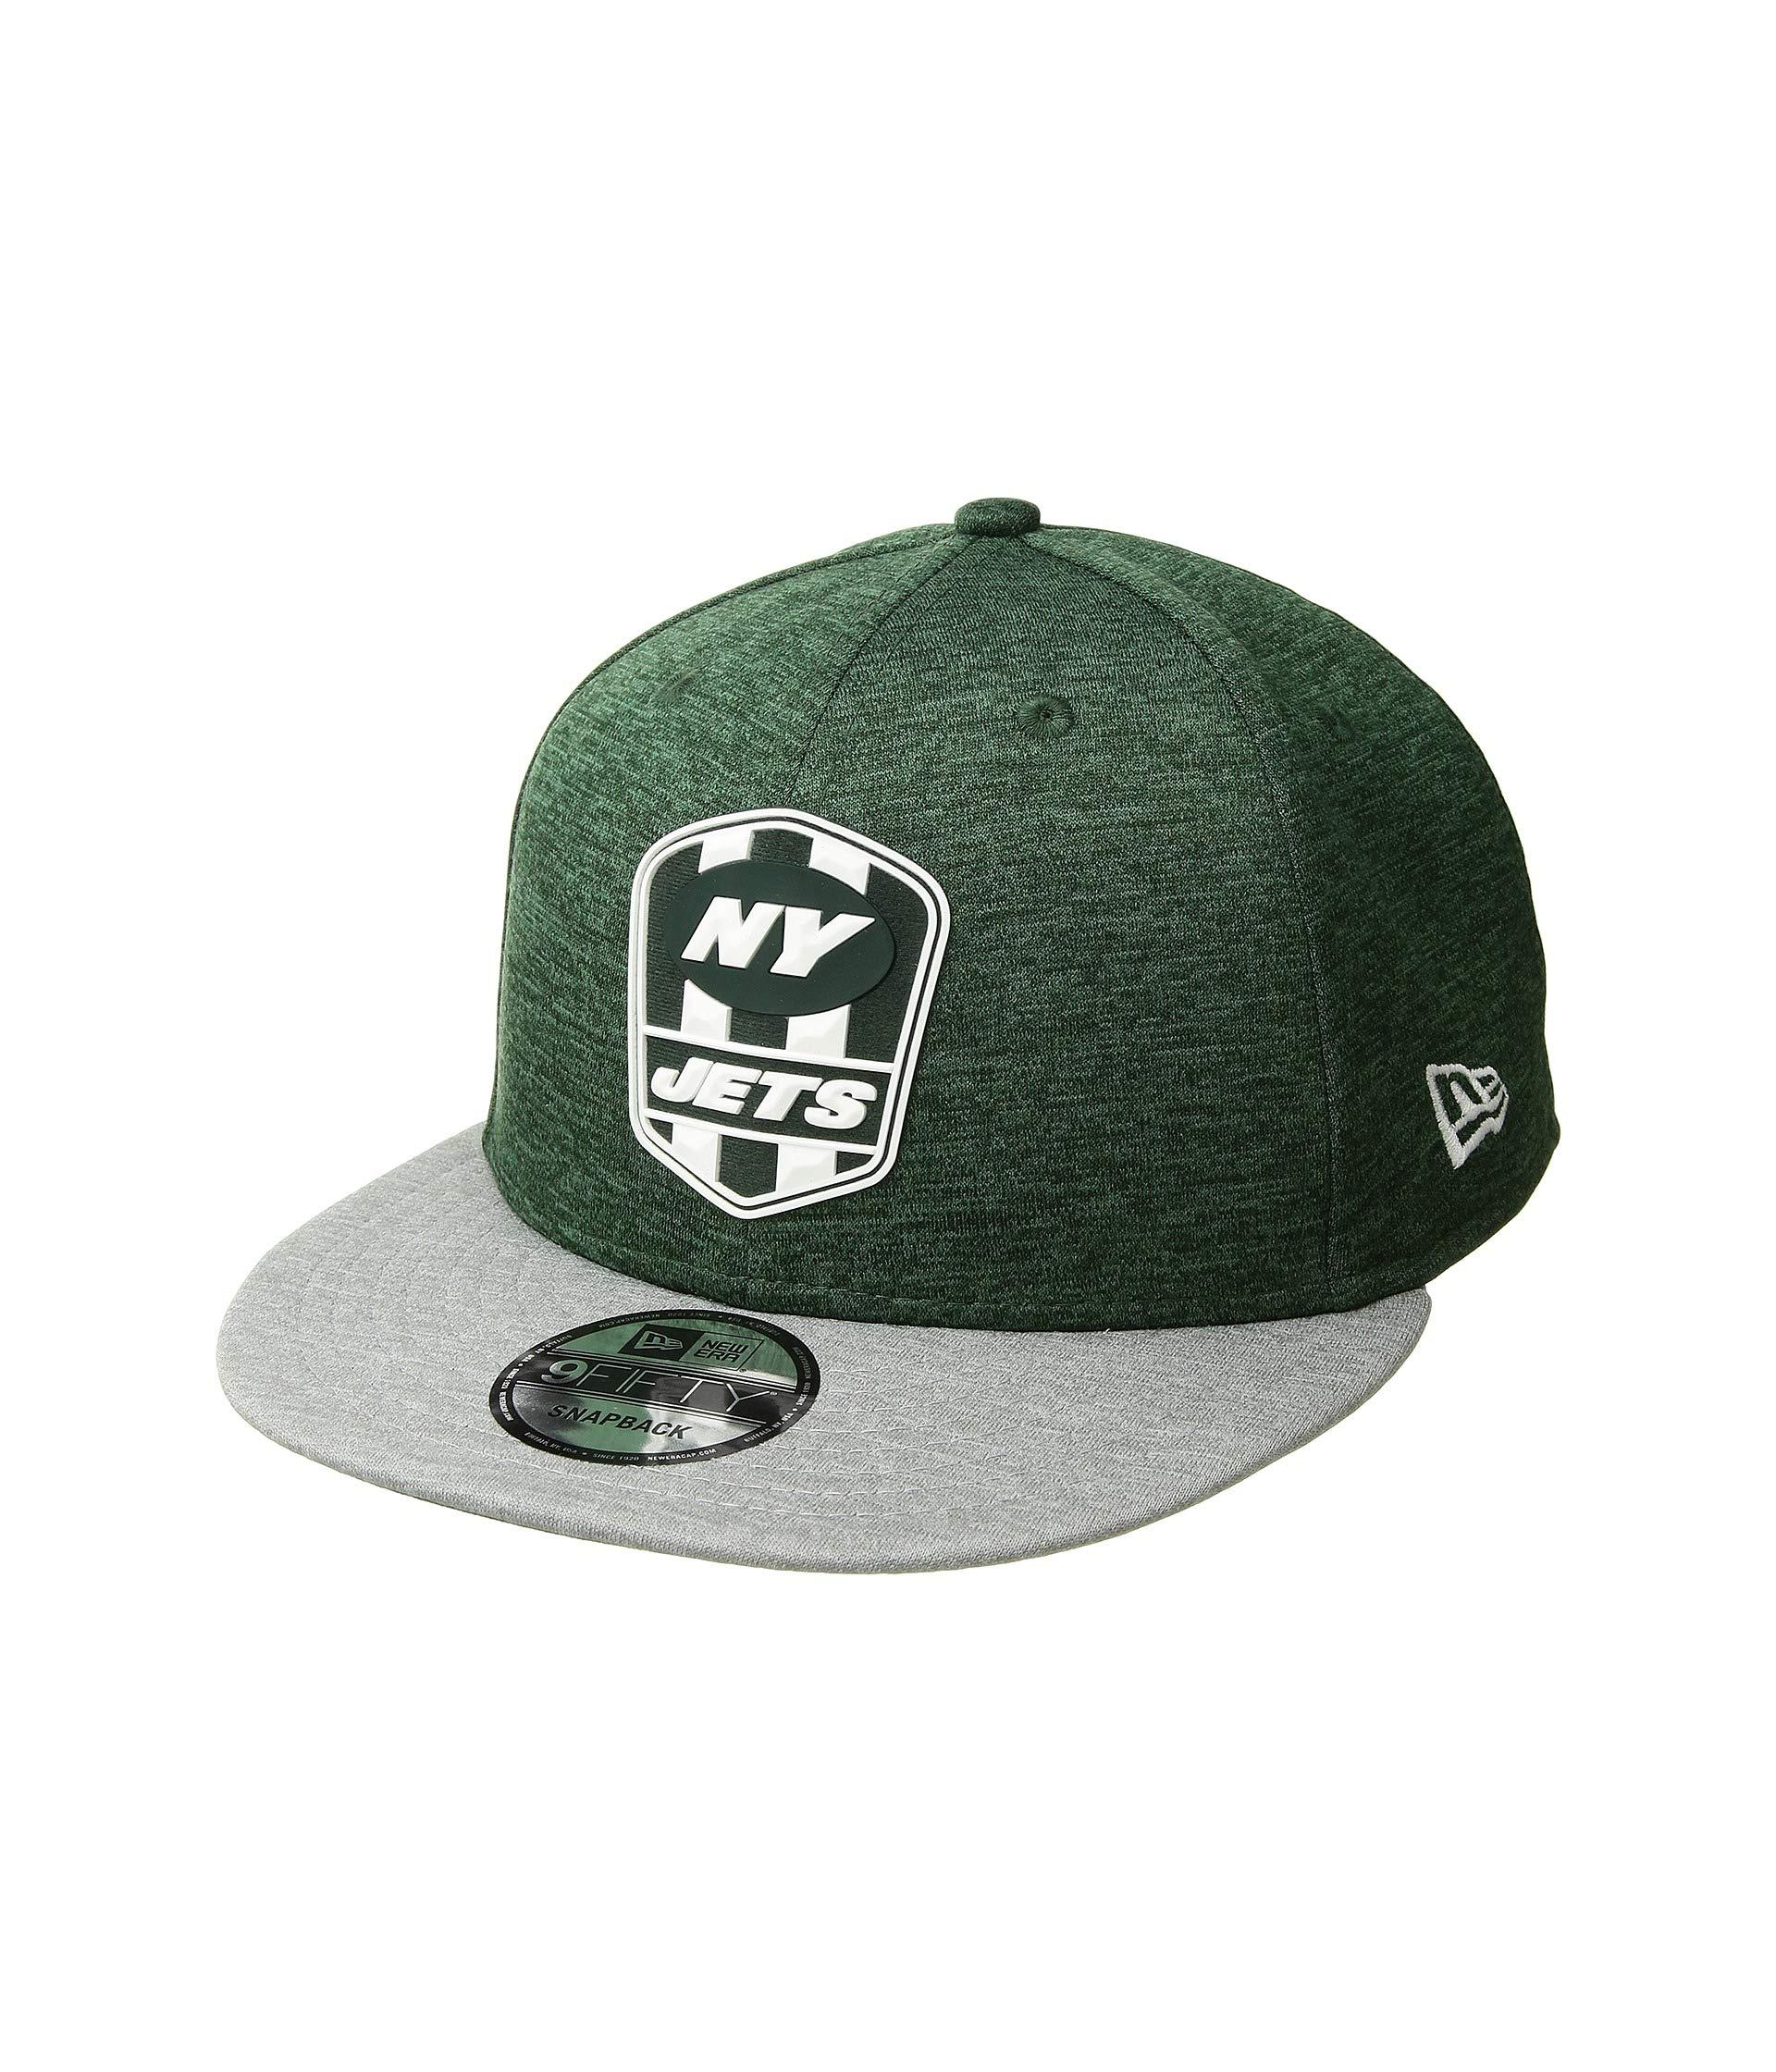 915005ca Lyst - KTZ 9fifty Official Sideline Away Snapback - New York Jets in ...